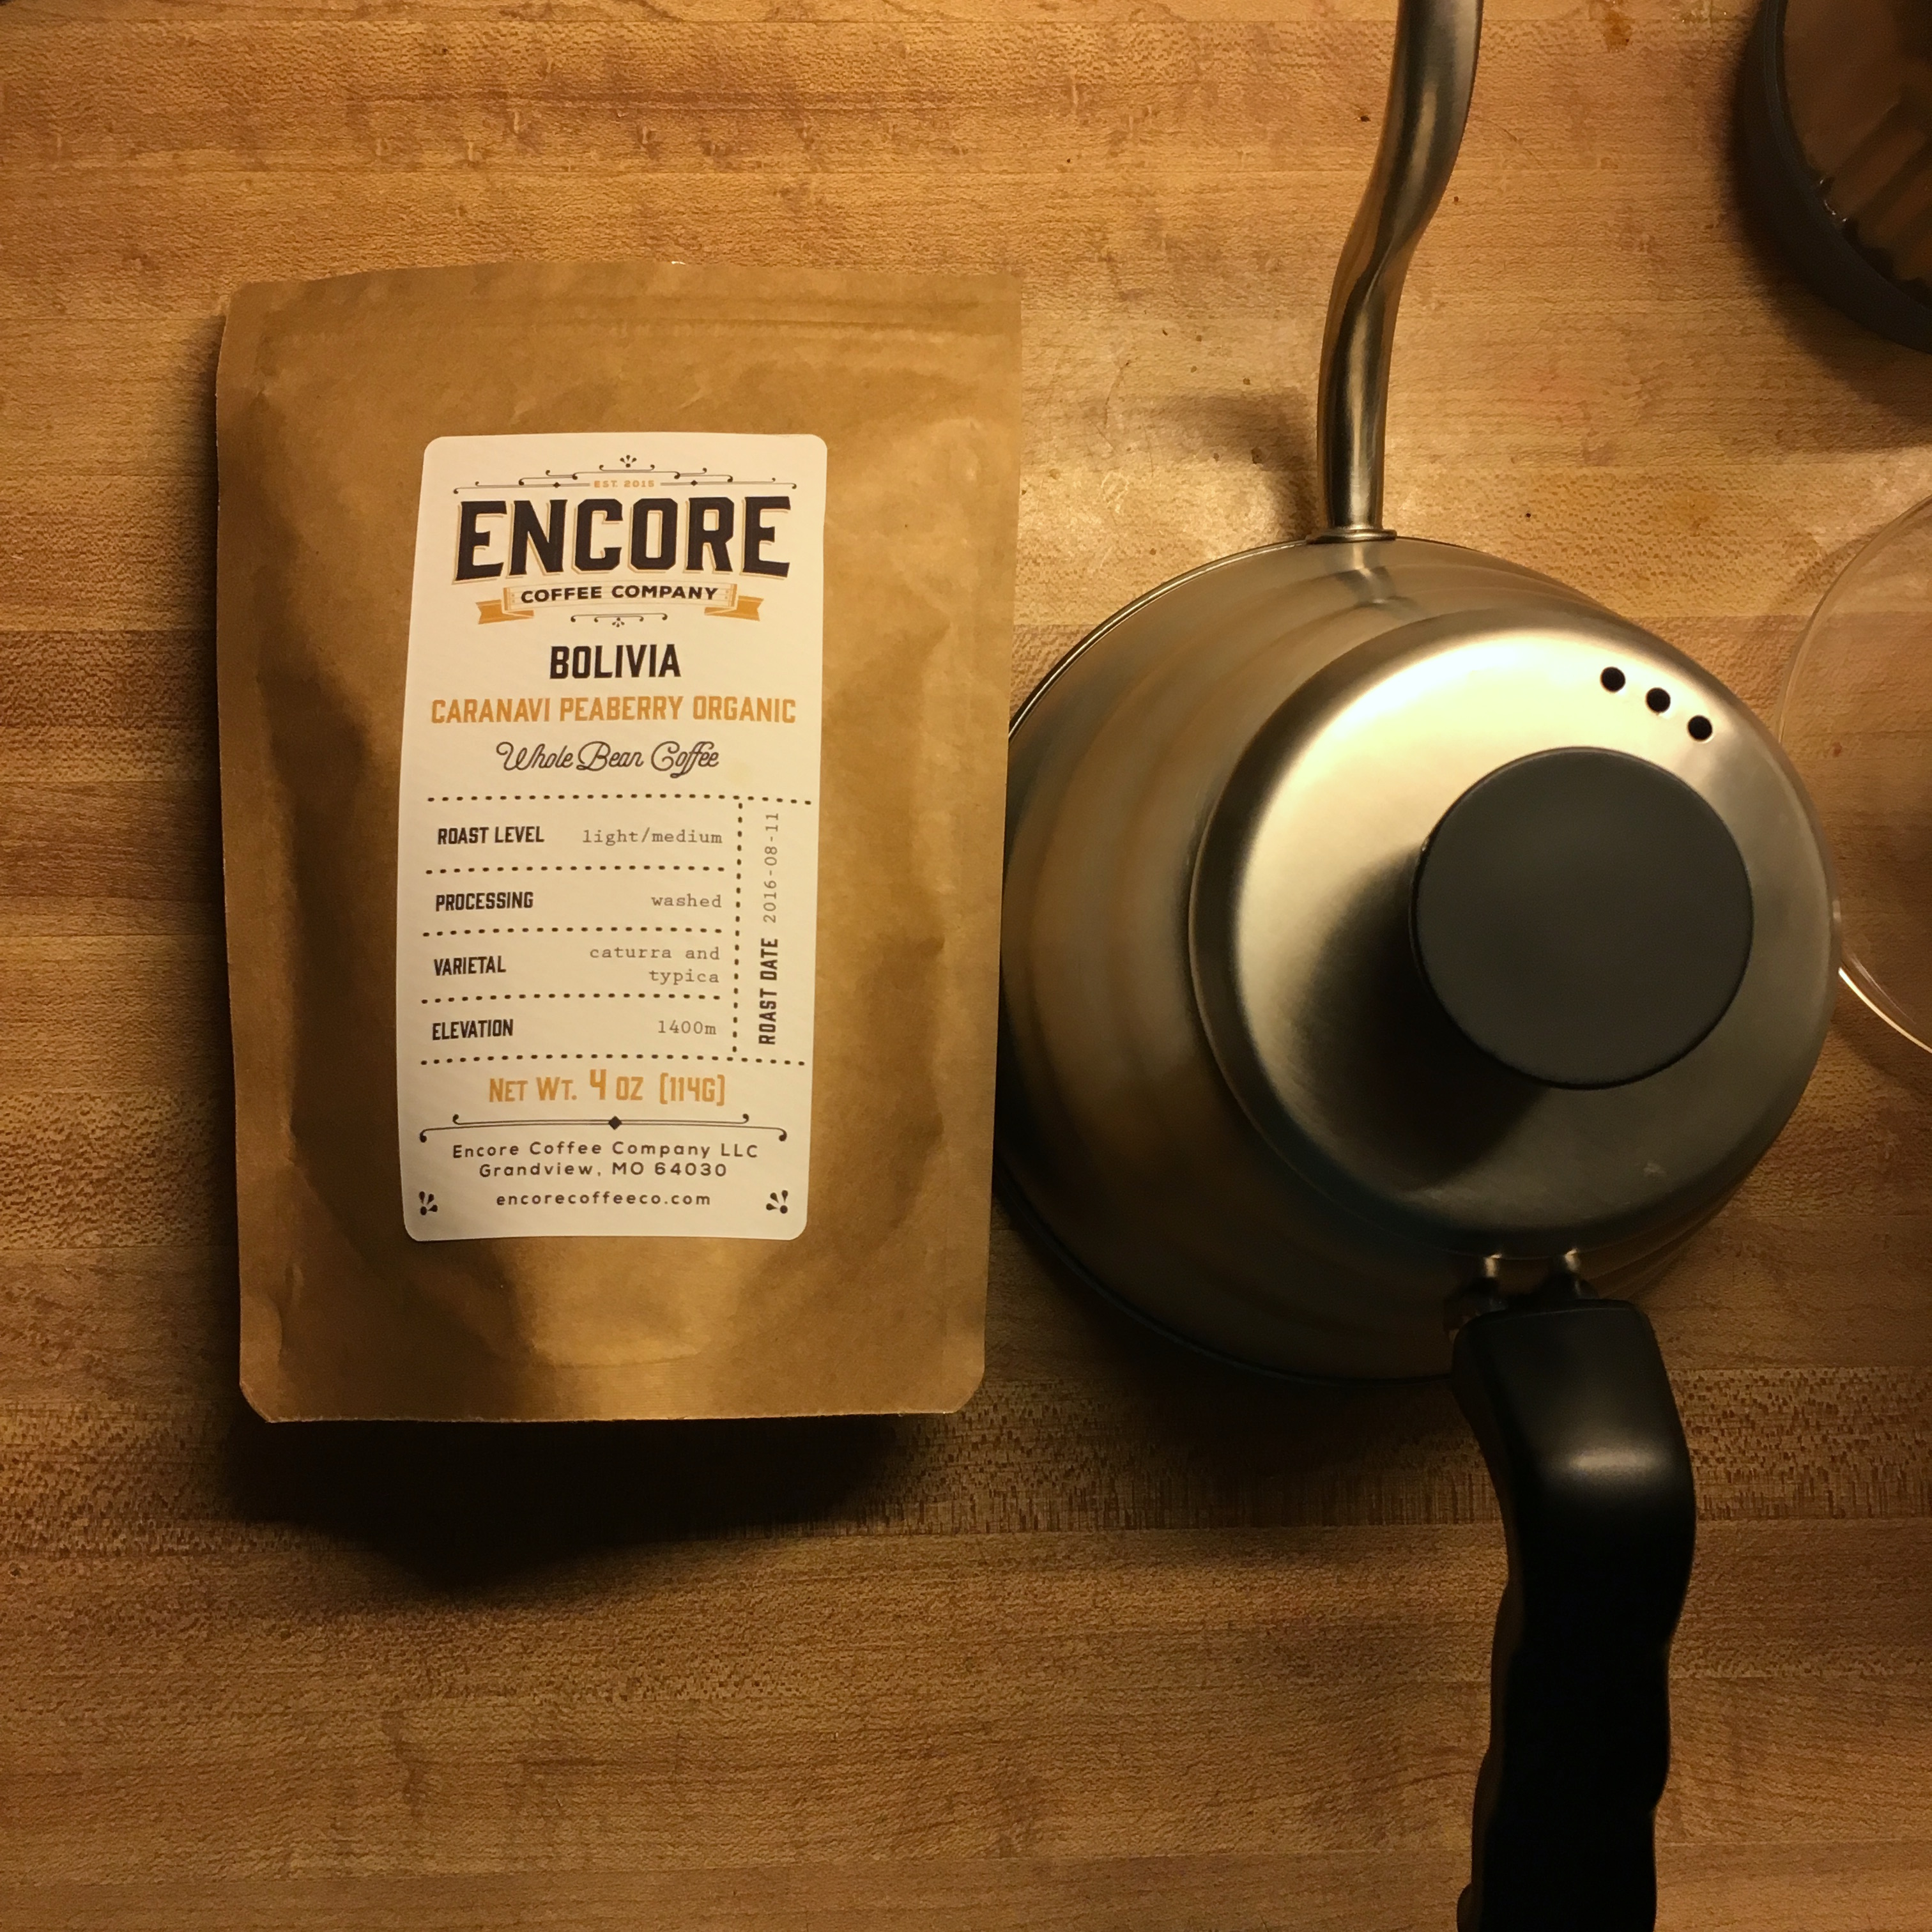 Encore Coffee Co. Bolivia Caranavi Peaberry Organic